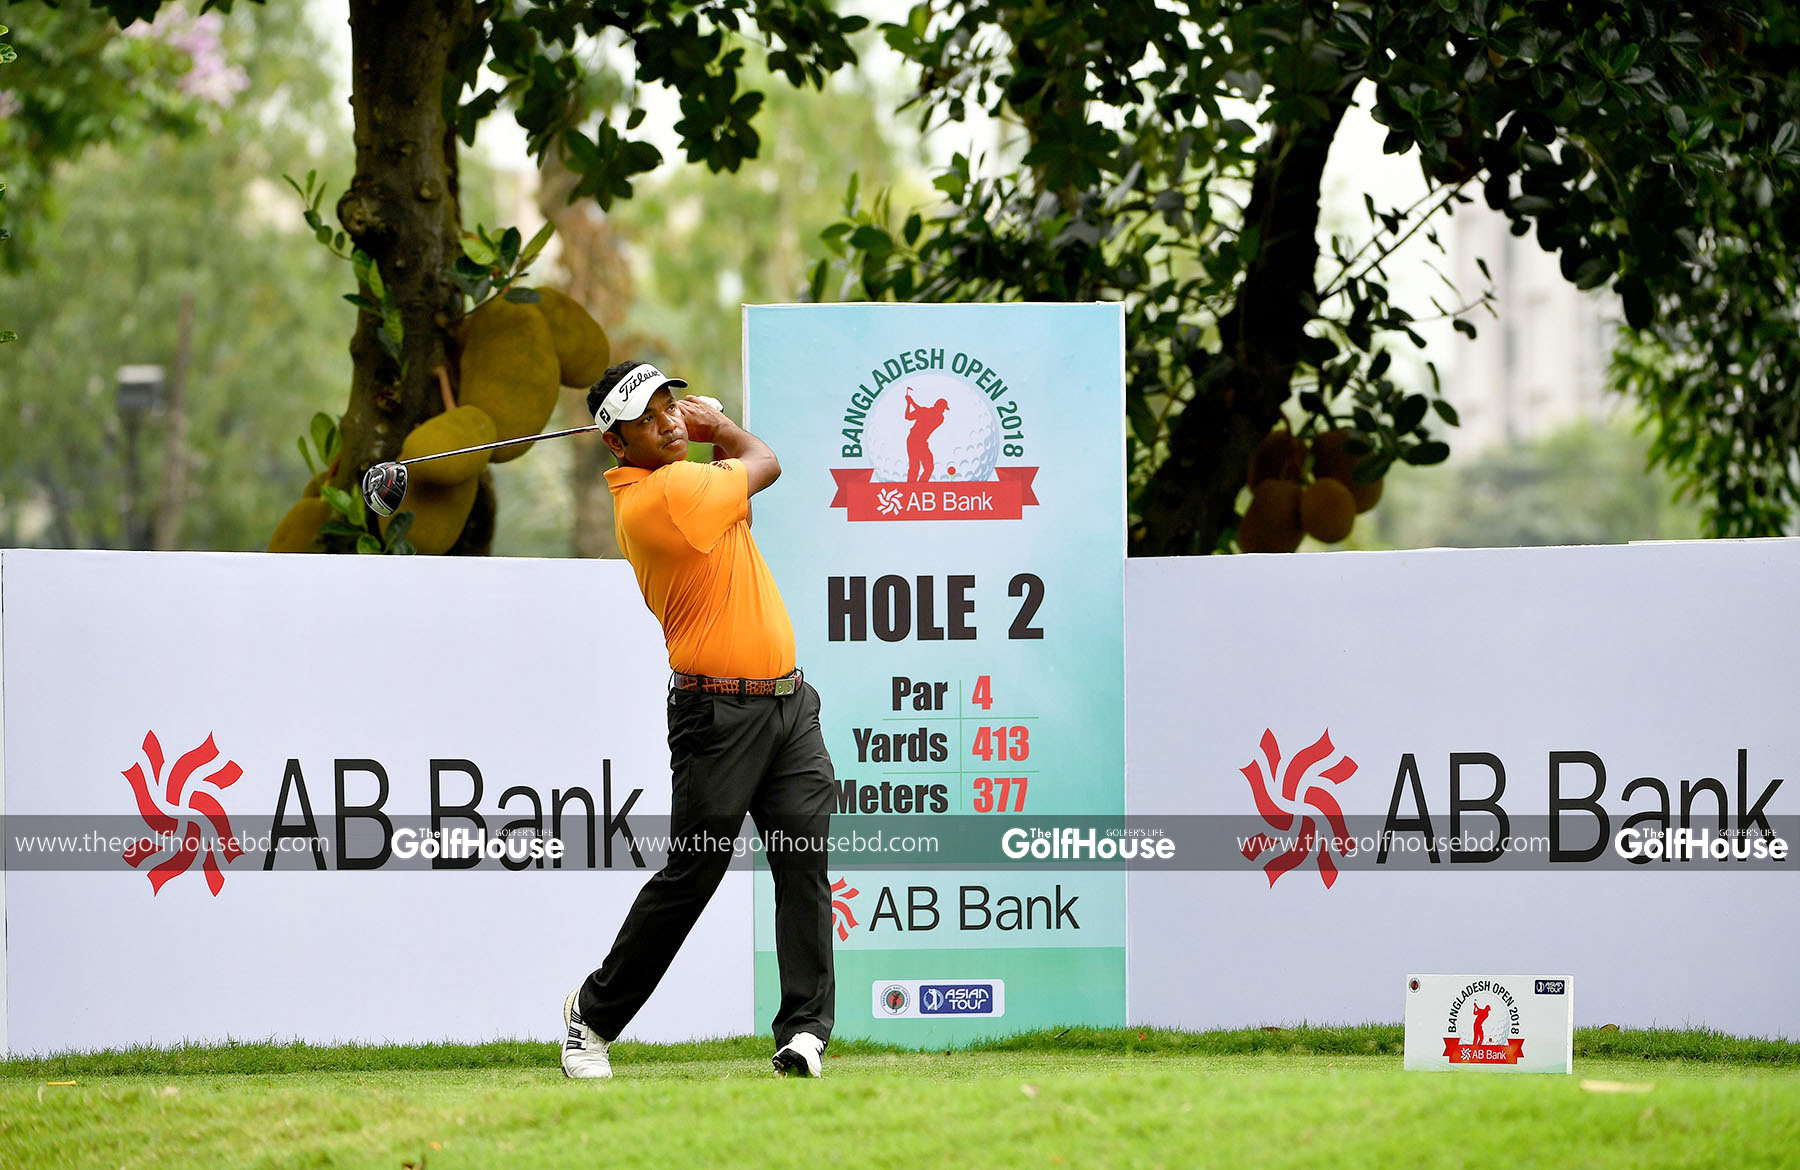 DHAKA_BANGLADESH_Siddikur_Rahman_of_Bangladesh_pictured_on_Monday_May_7_2018_during_an_official_practice_round_ahead_of_the_AB_Bank_Bangladesh_Open_at_the_Kurmitola_Golf_Club_Dhaka_Bangladesh_The_USD$_300.000_Asian_Tour_event_is_staged_May_9_12_2018_Picture_by_Paul_Lakatos_Asian_Tour.